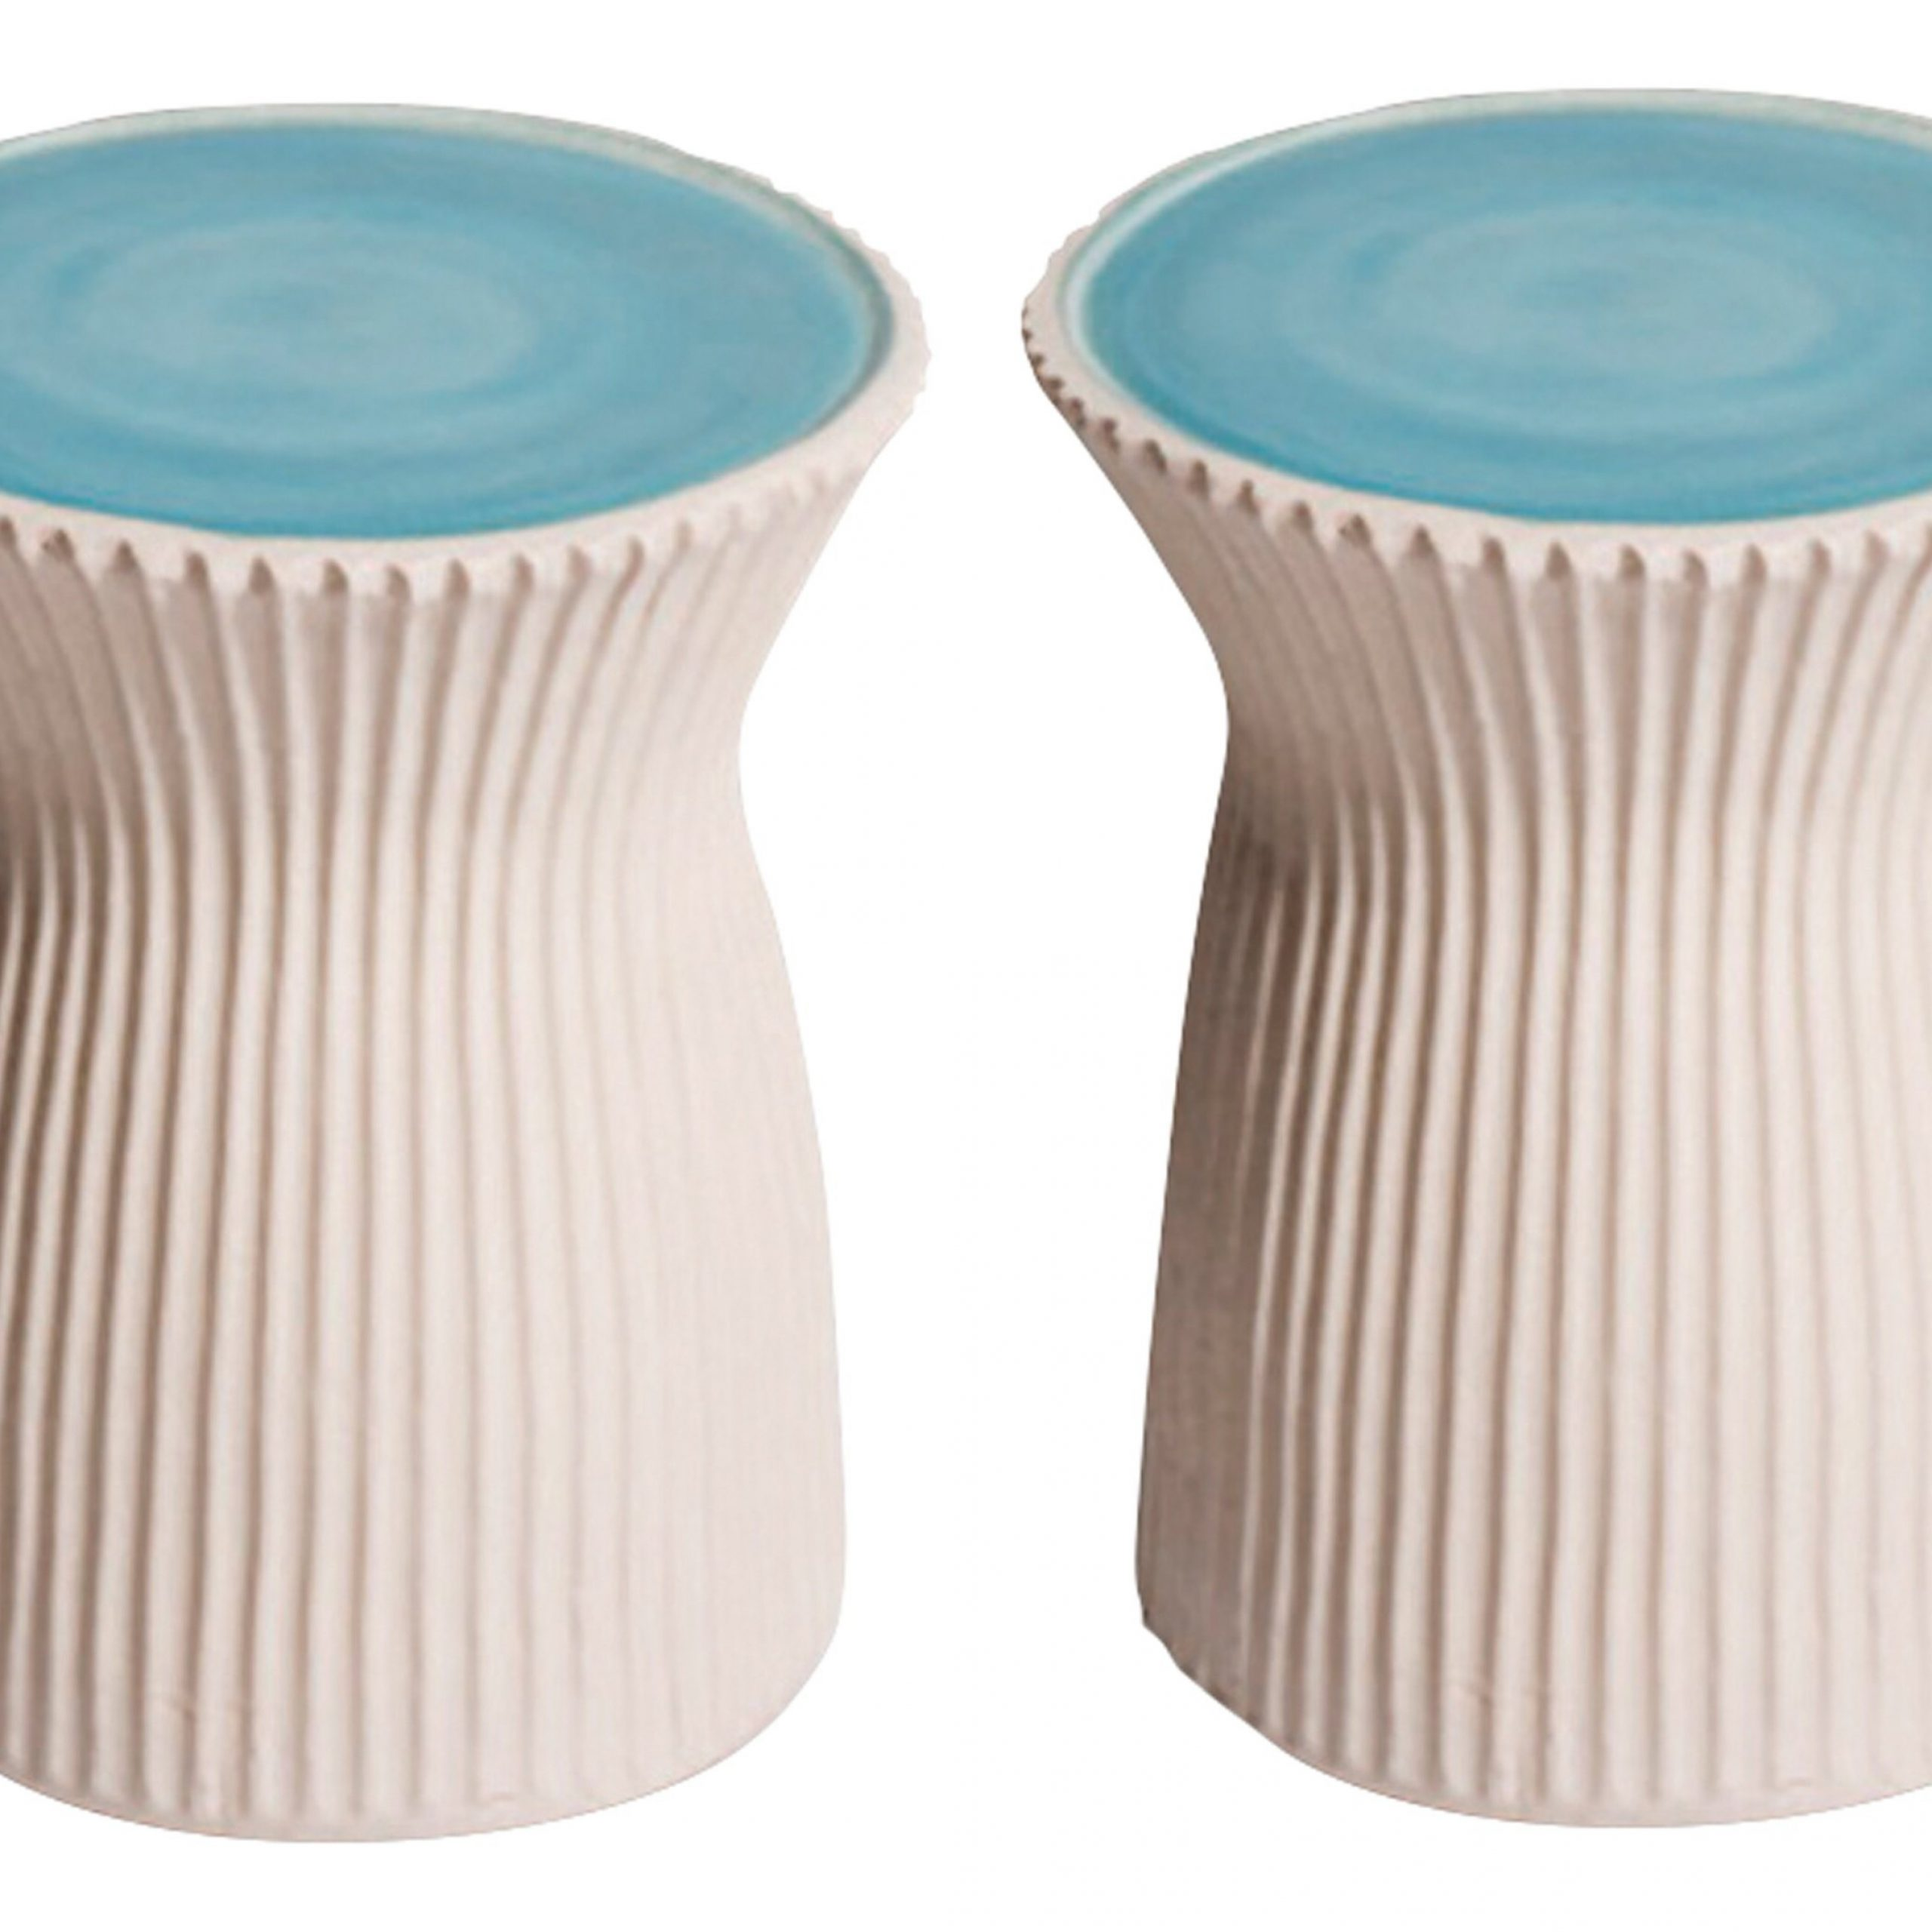 2020 Aloysius Ceramic Garden Stools Pertaining To Ceramic Garden Stool (View 3 of 30)